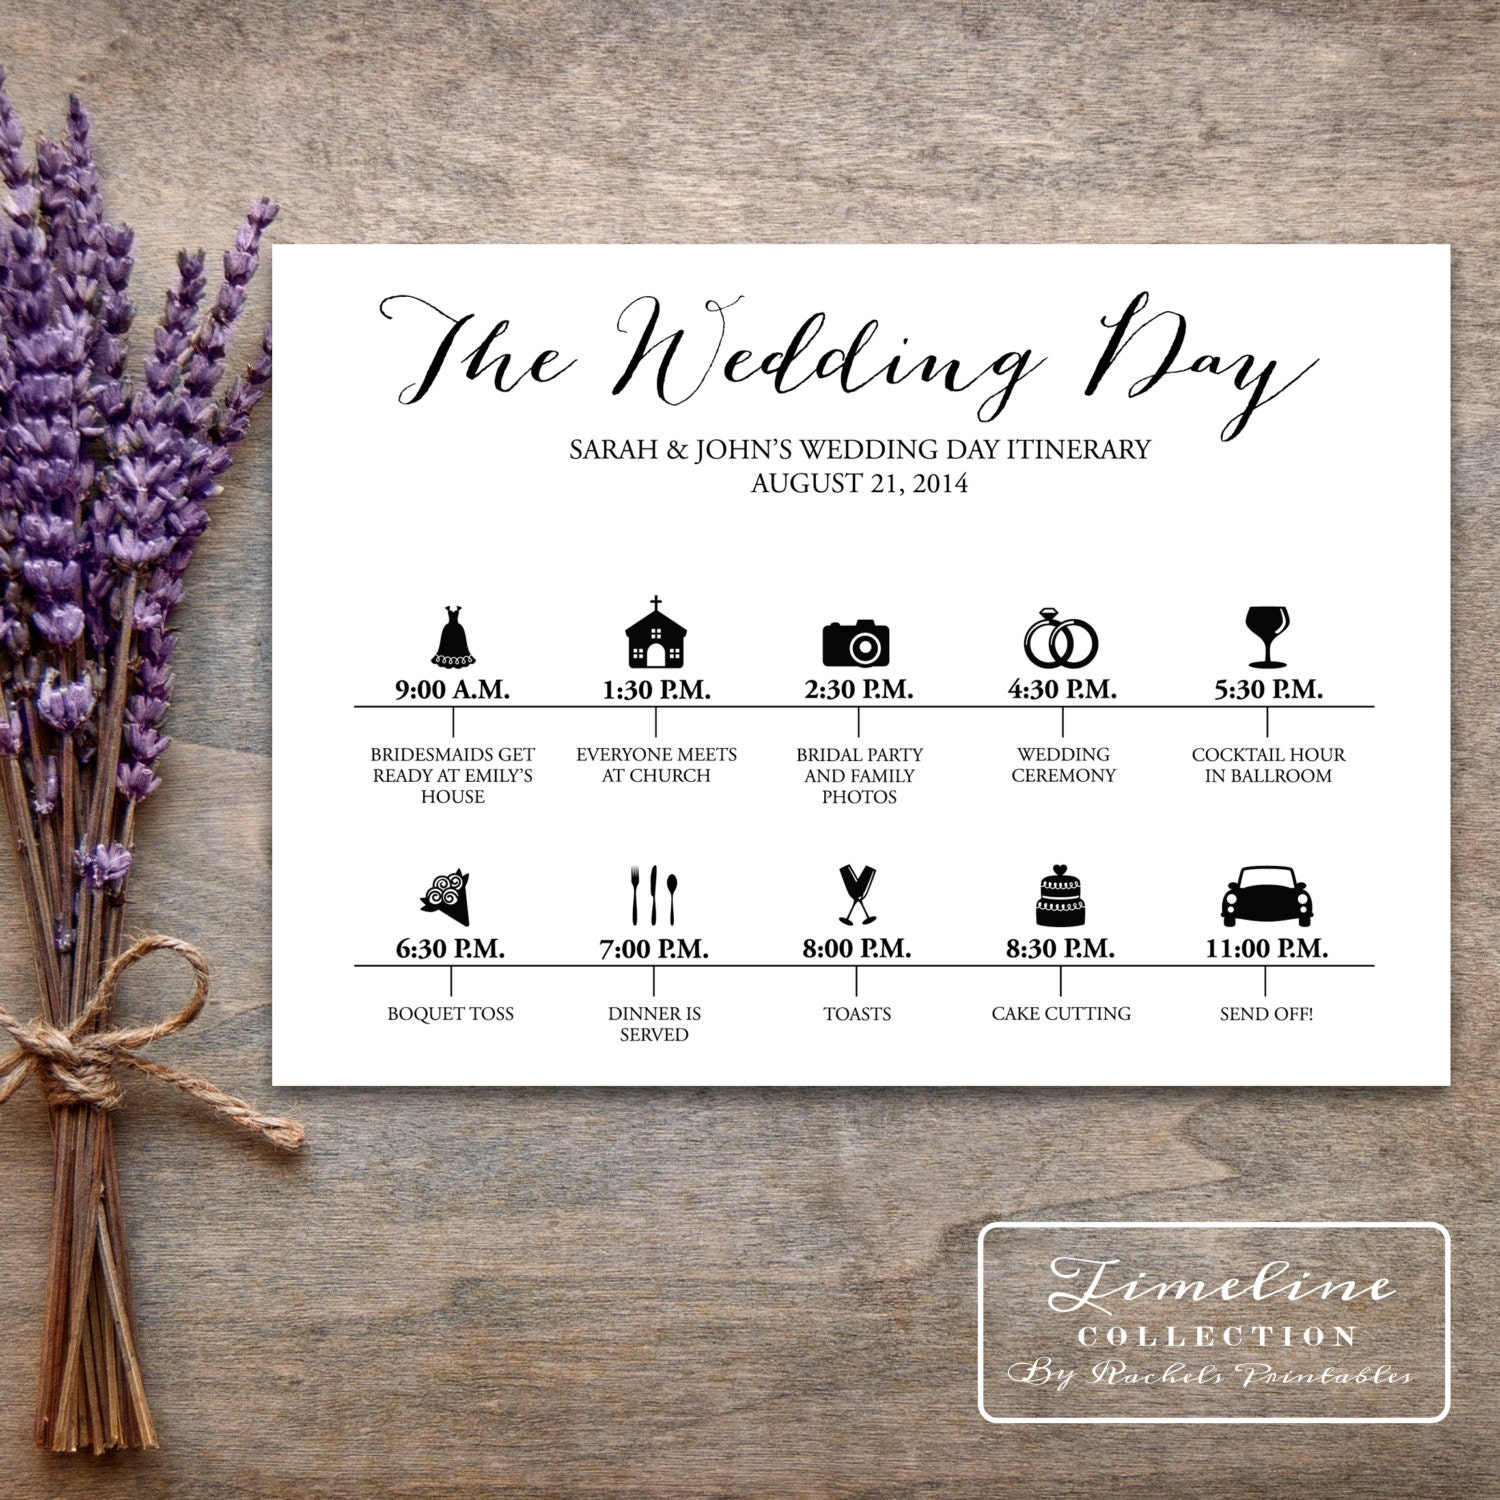 Wedding Day Timeline: Printable Wedding Timeline Day Of Itinerary By